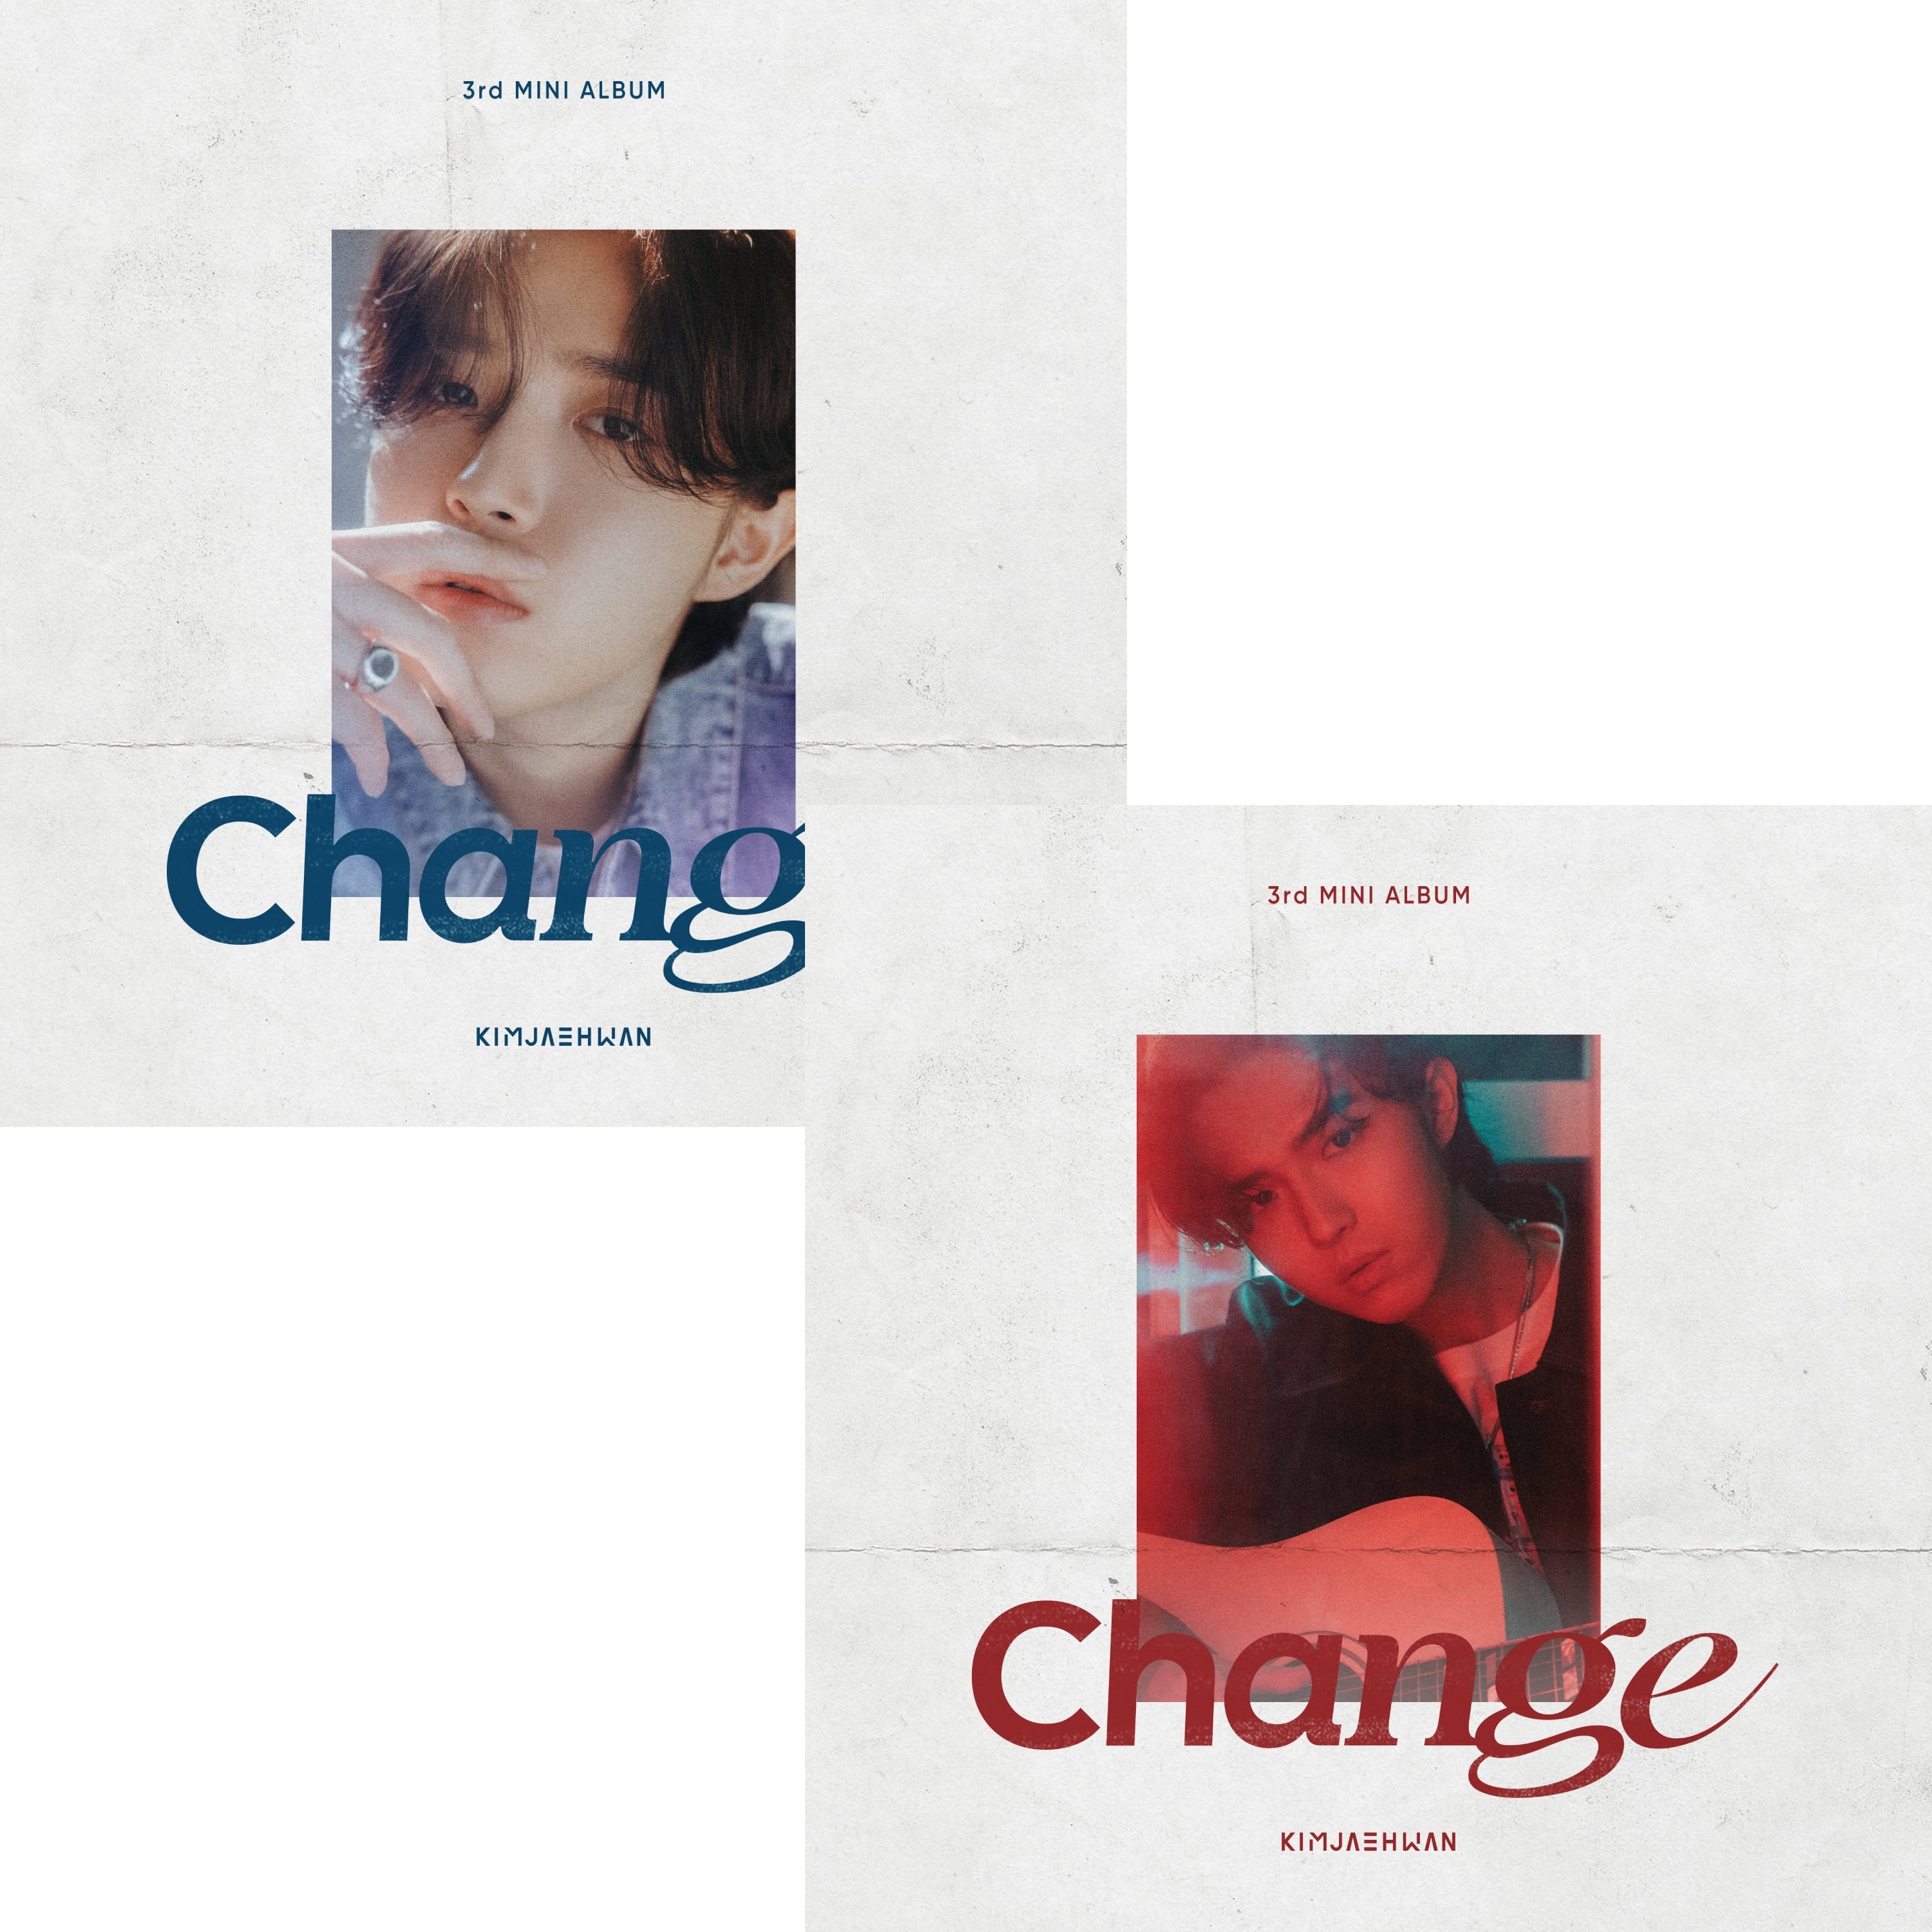 [PRE-ORDER] 김재환(KIM JAE HWAN) - 3rd MINI ALBUM 3집 [Change] (2CD SET = ing Ver. + ed Ver.)케이팝스토어(kpop store)